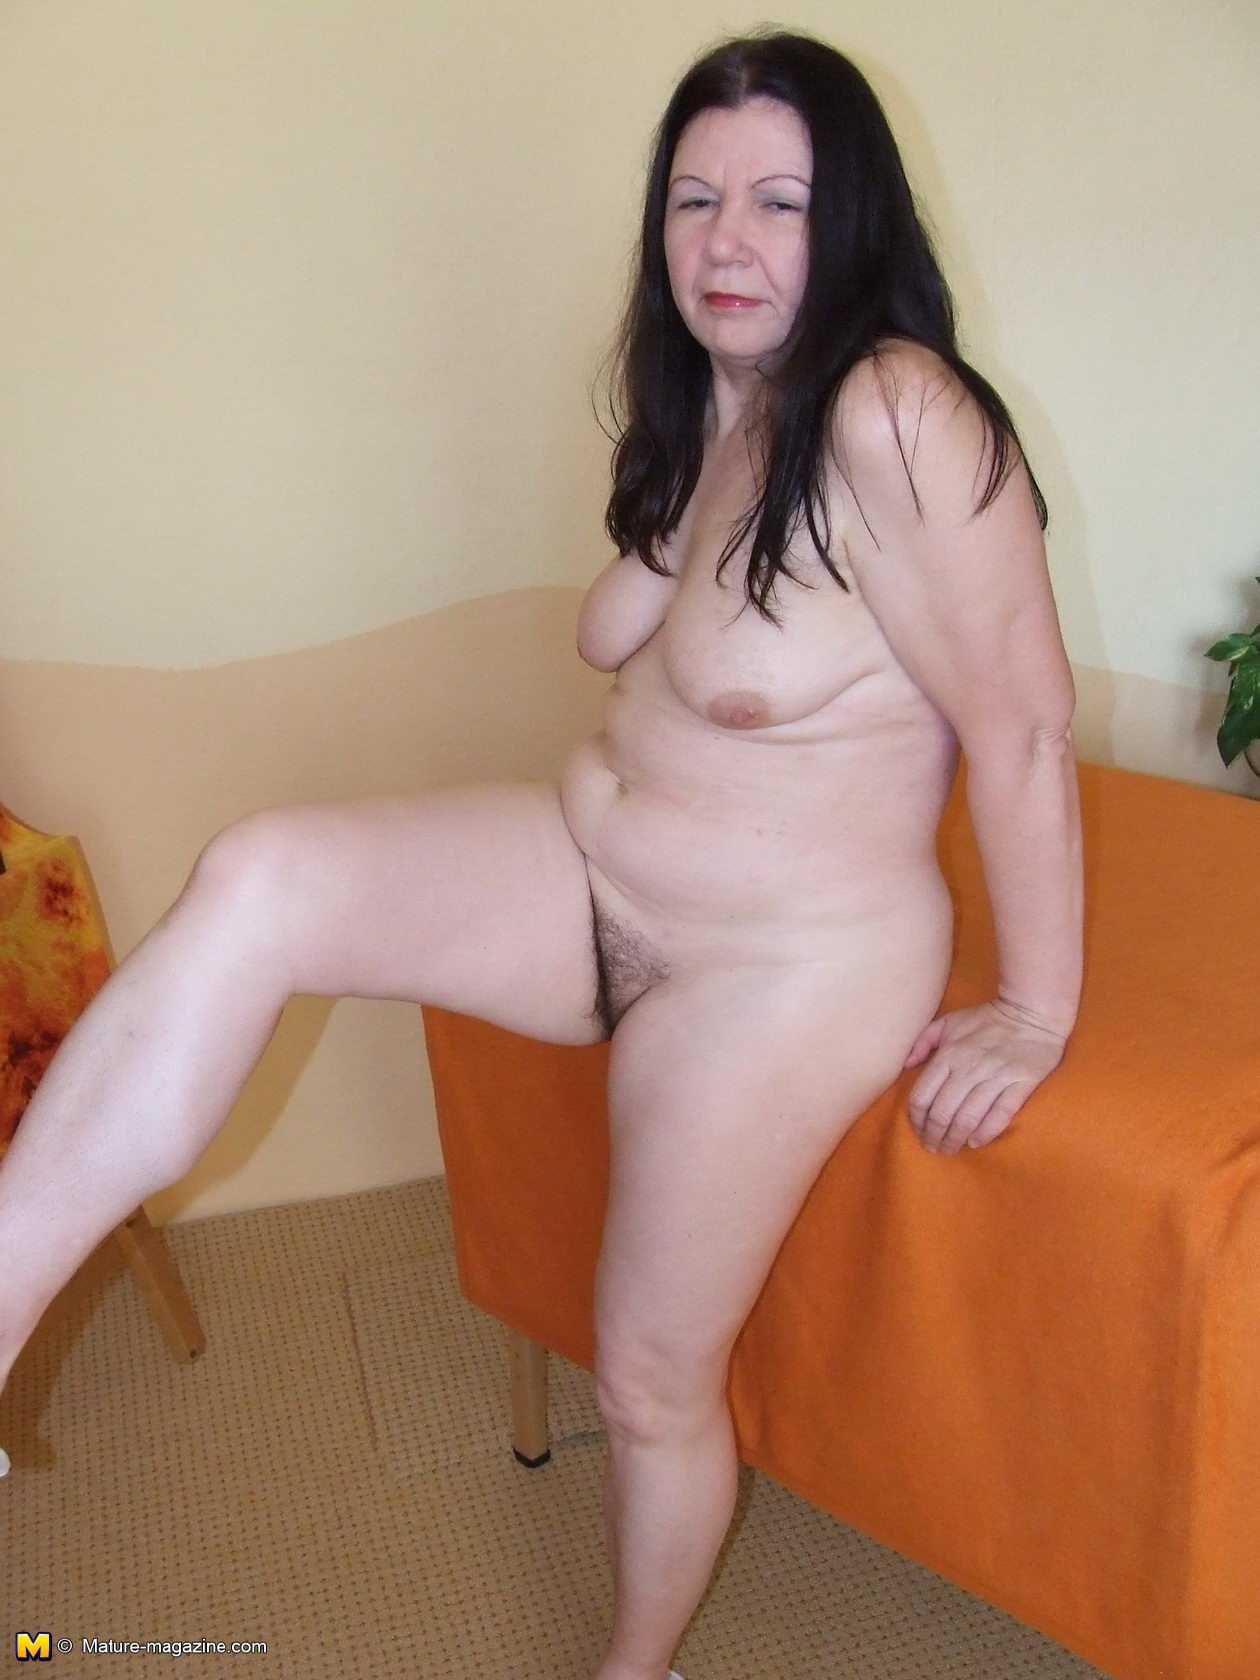 dark haired serbian girl nude